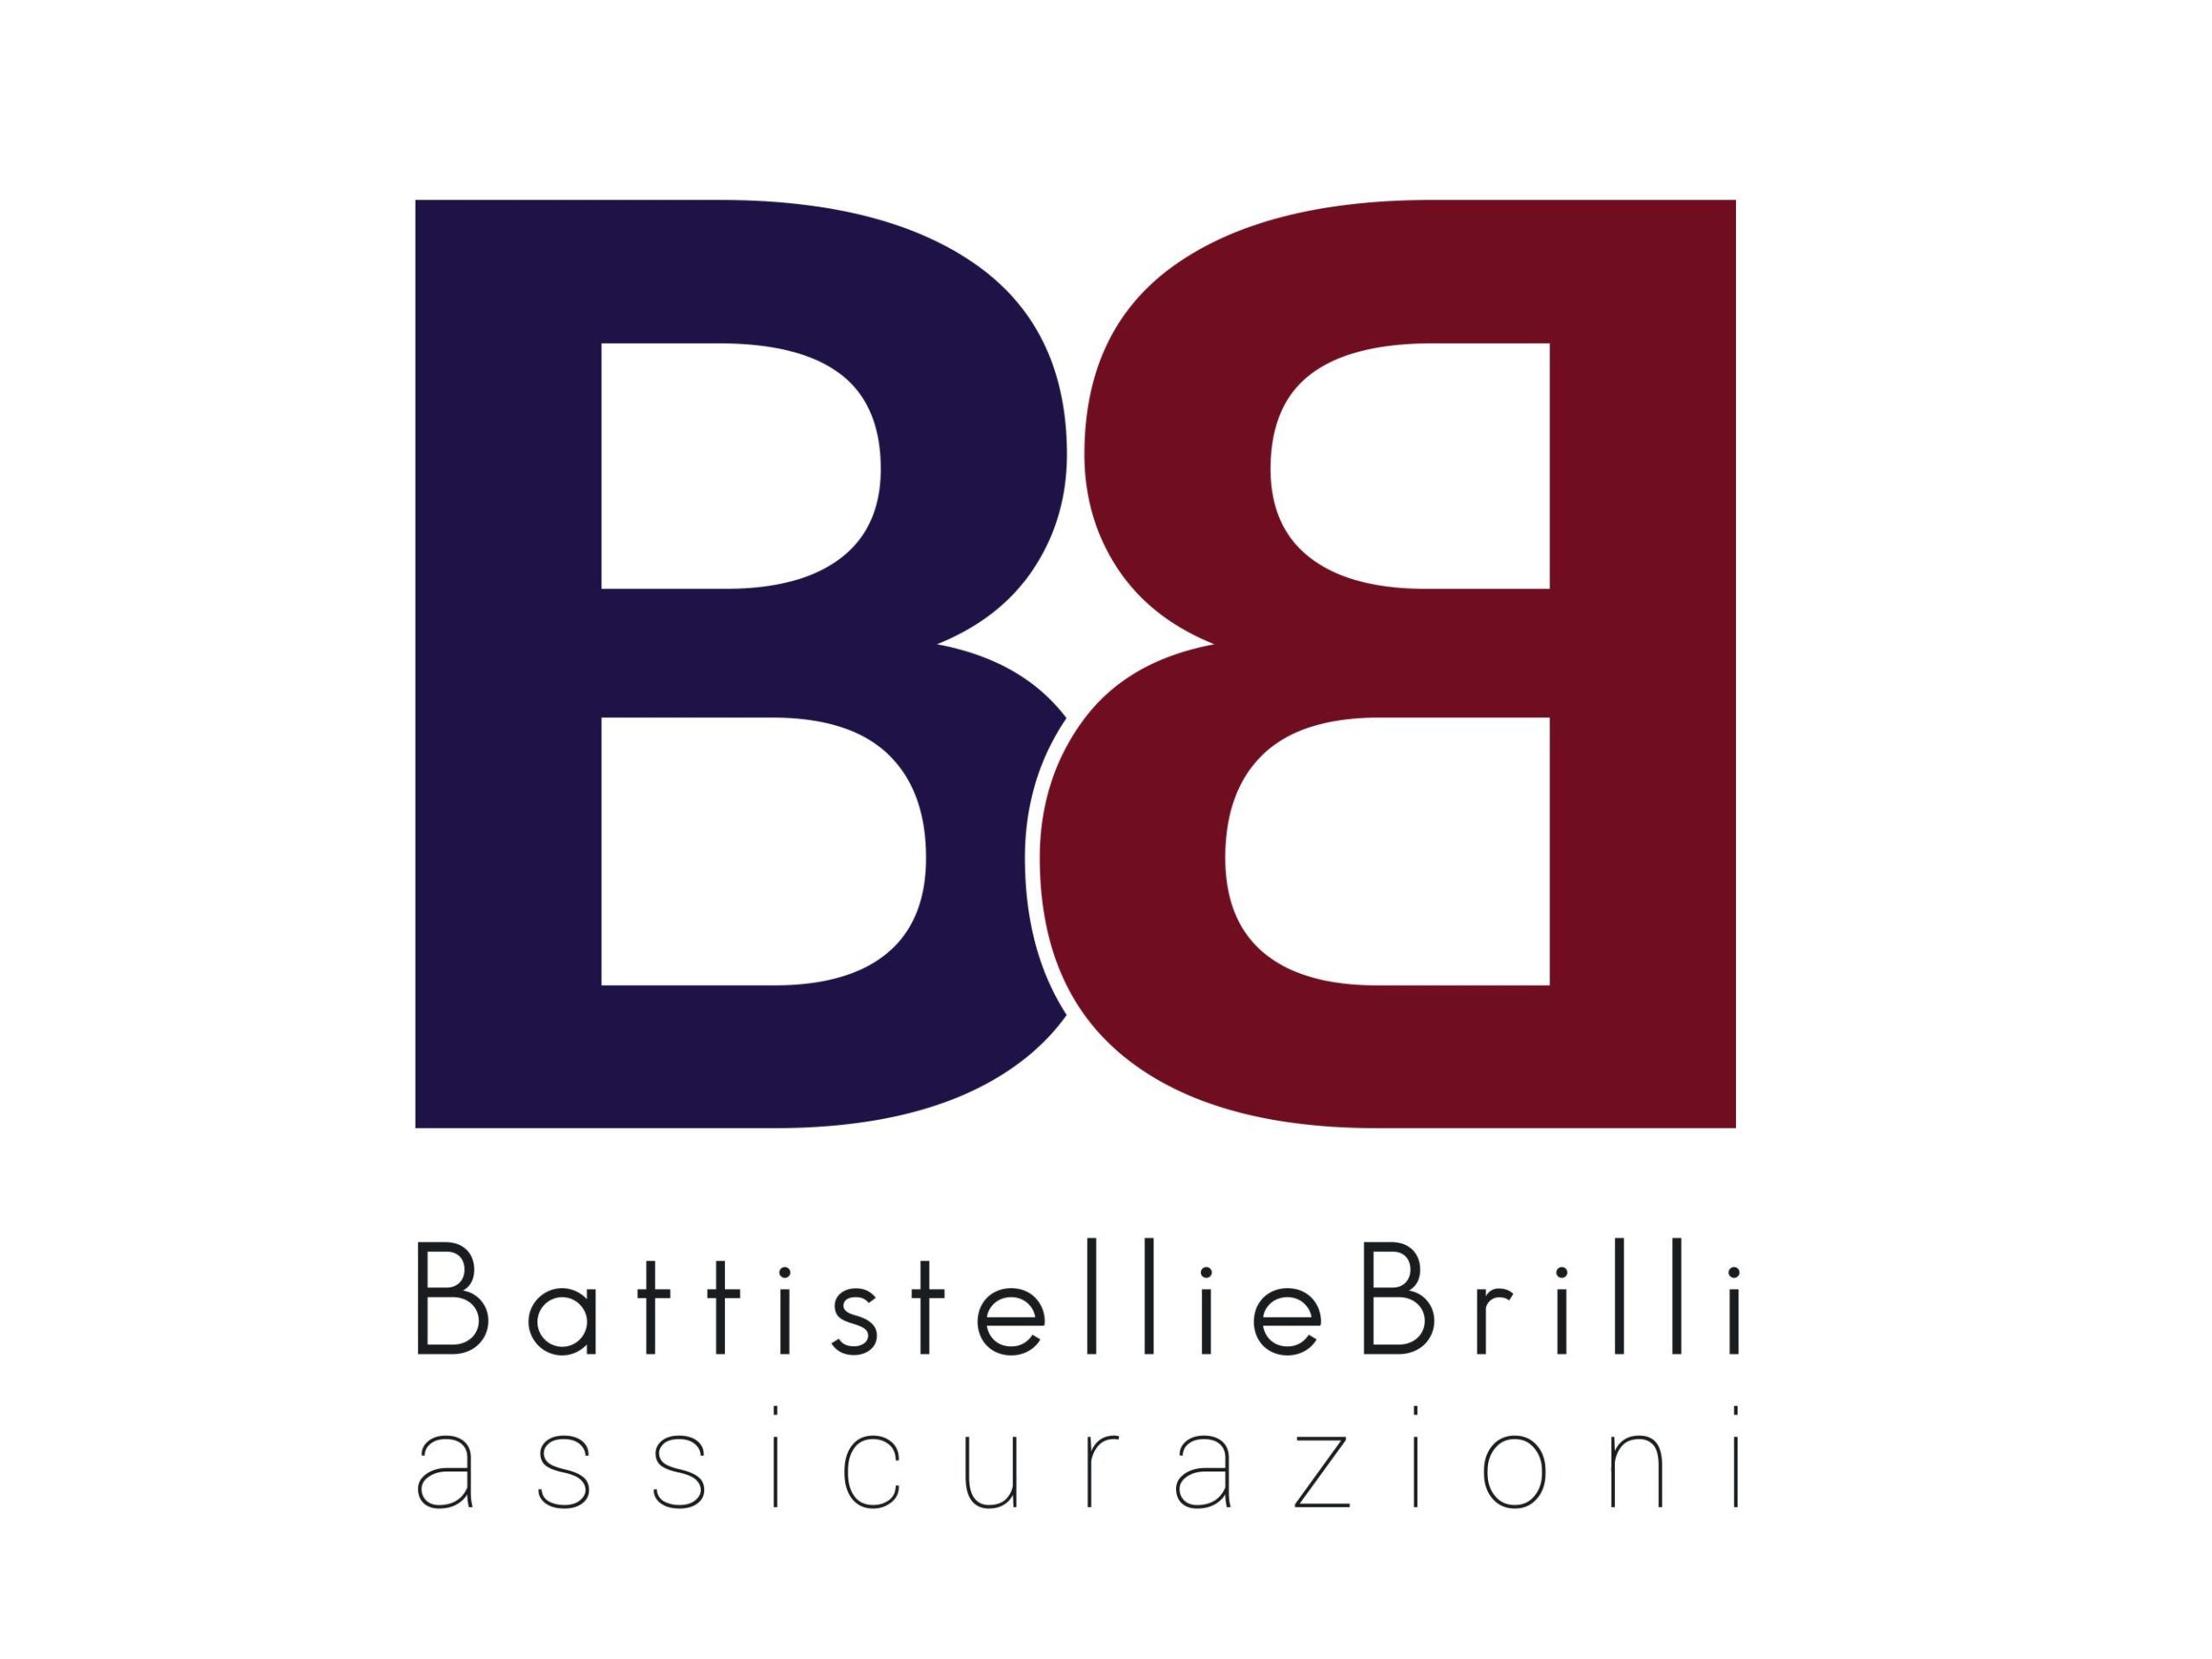 Battistelli e Brilli